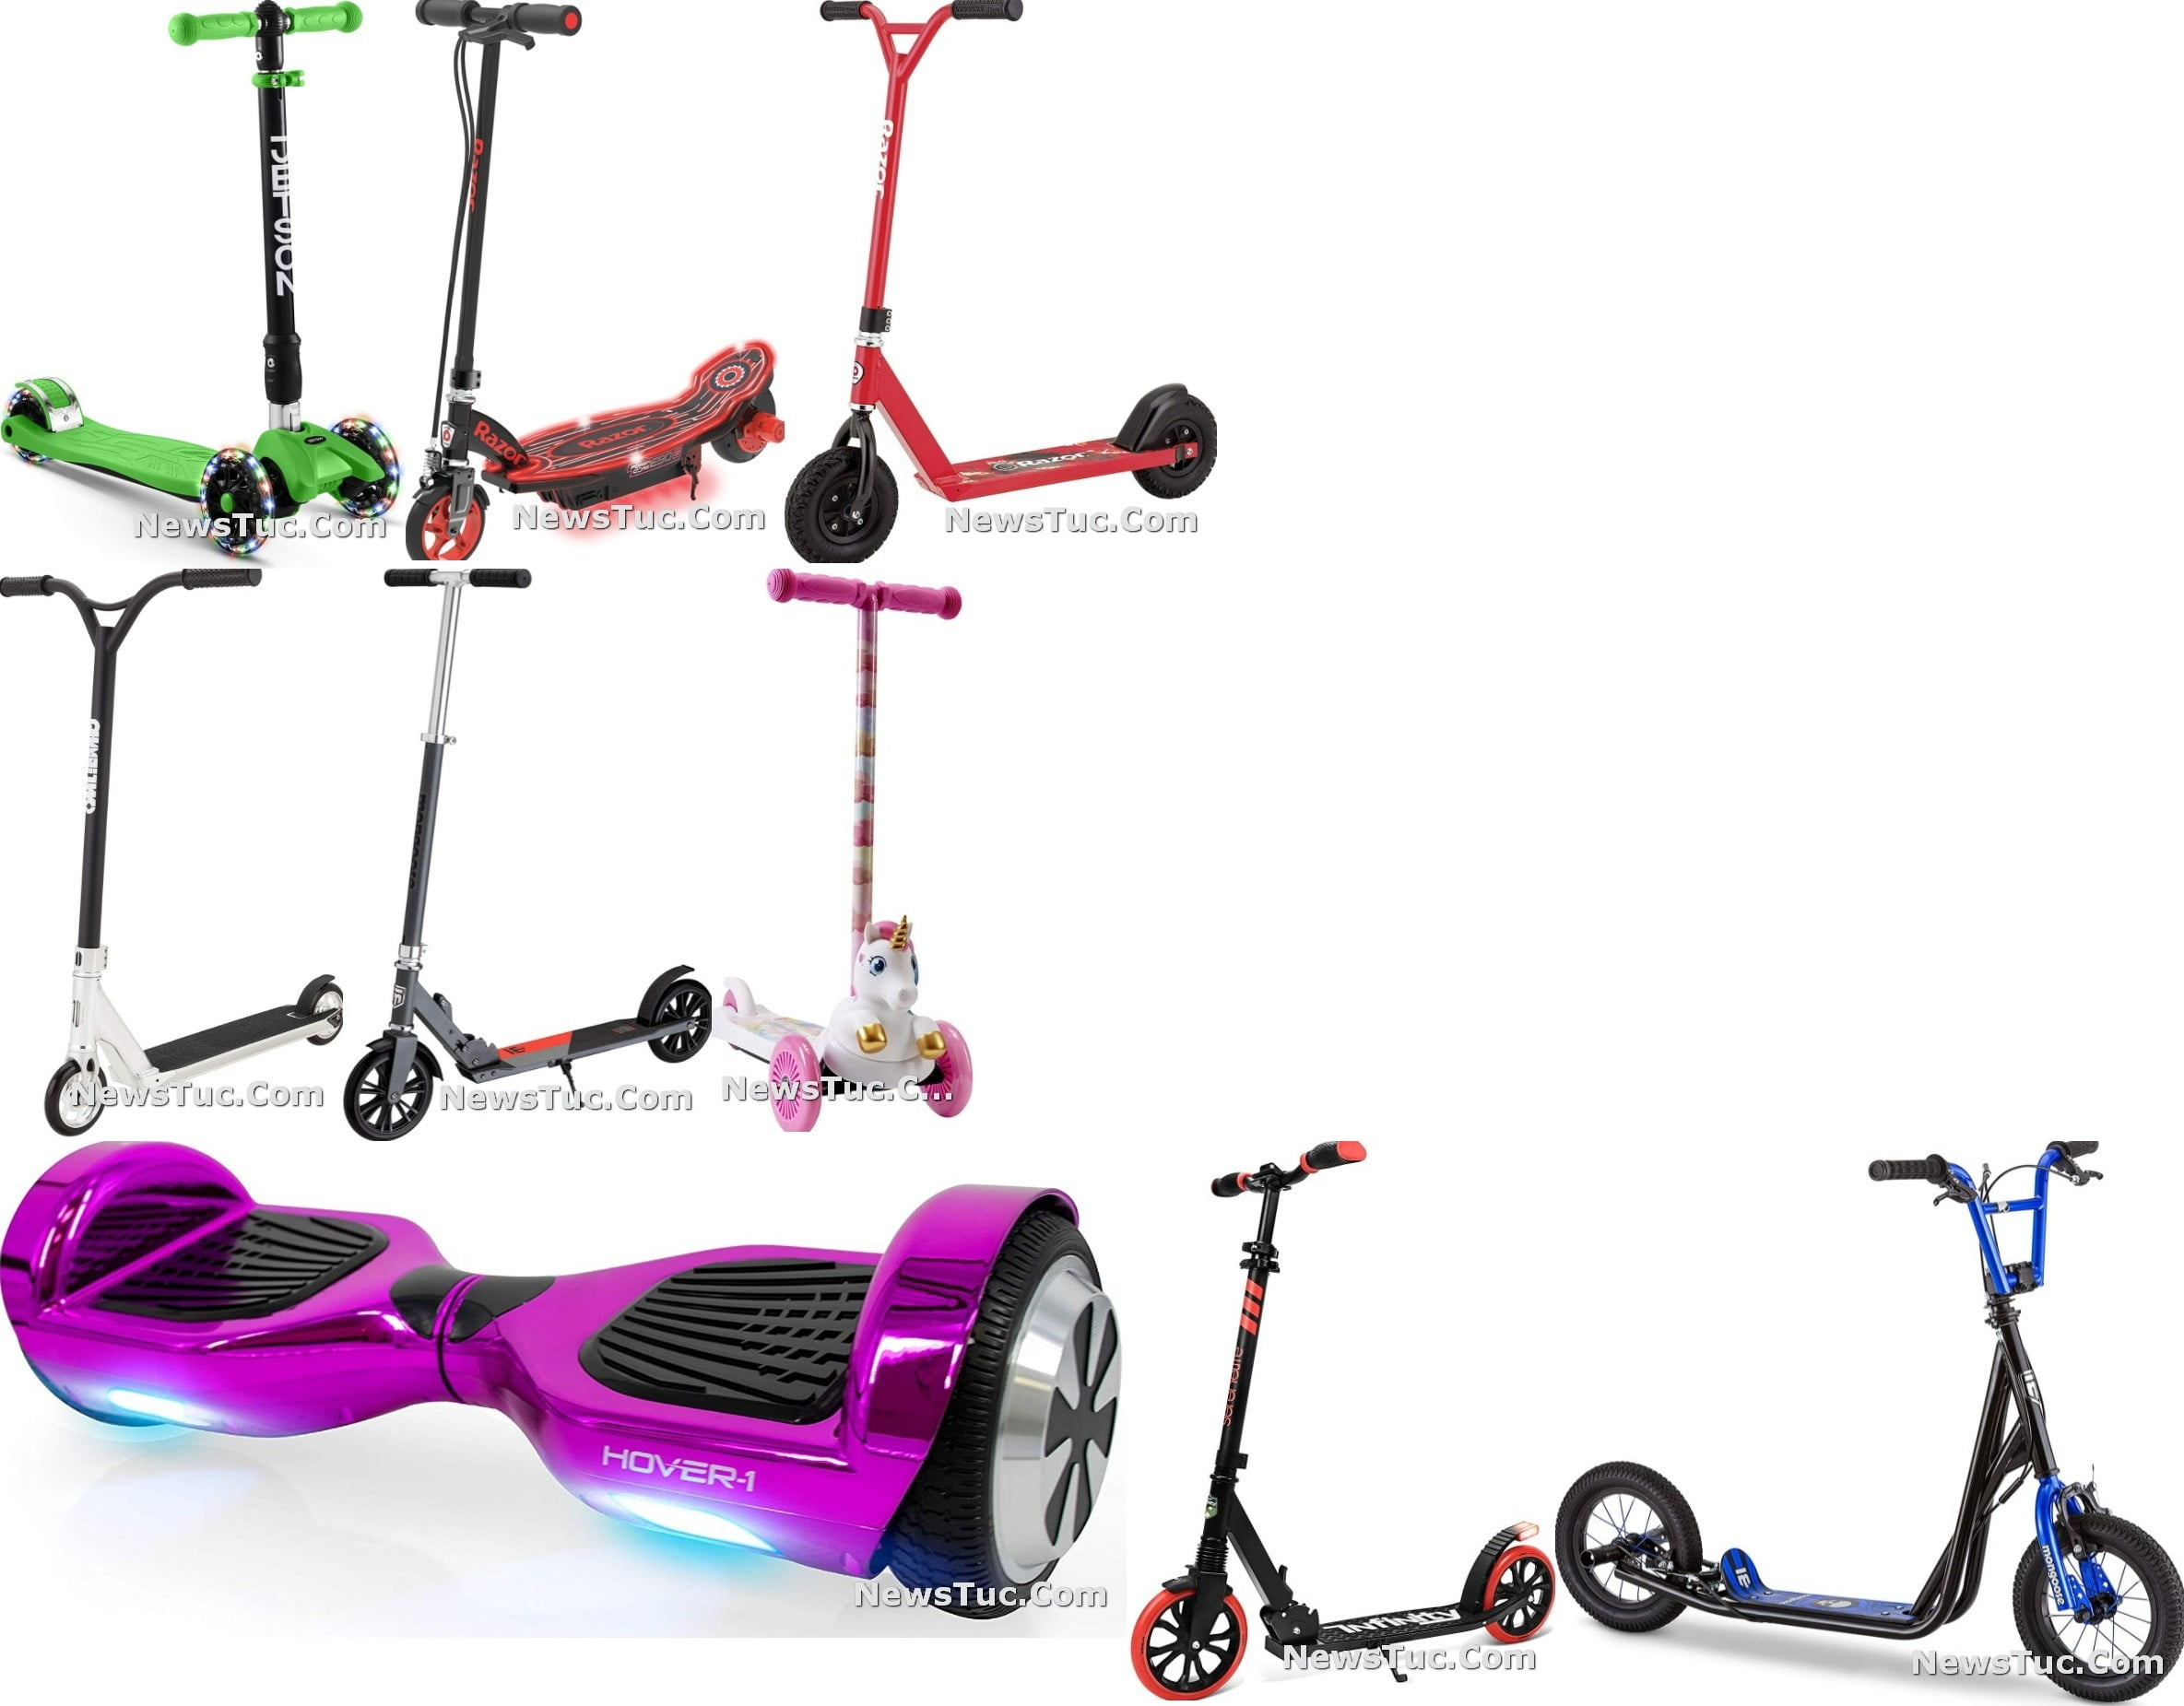 Top High-Speed Electric Scooter for adults & kids